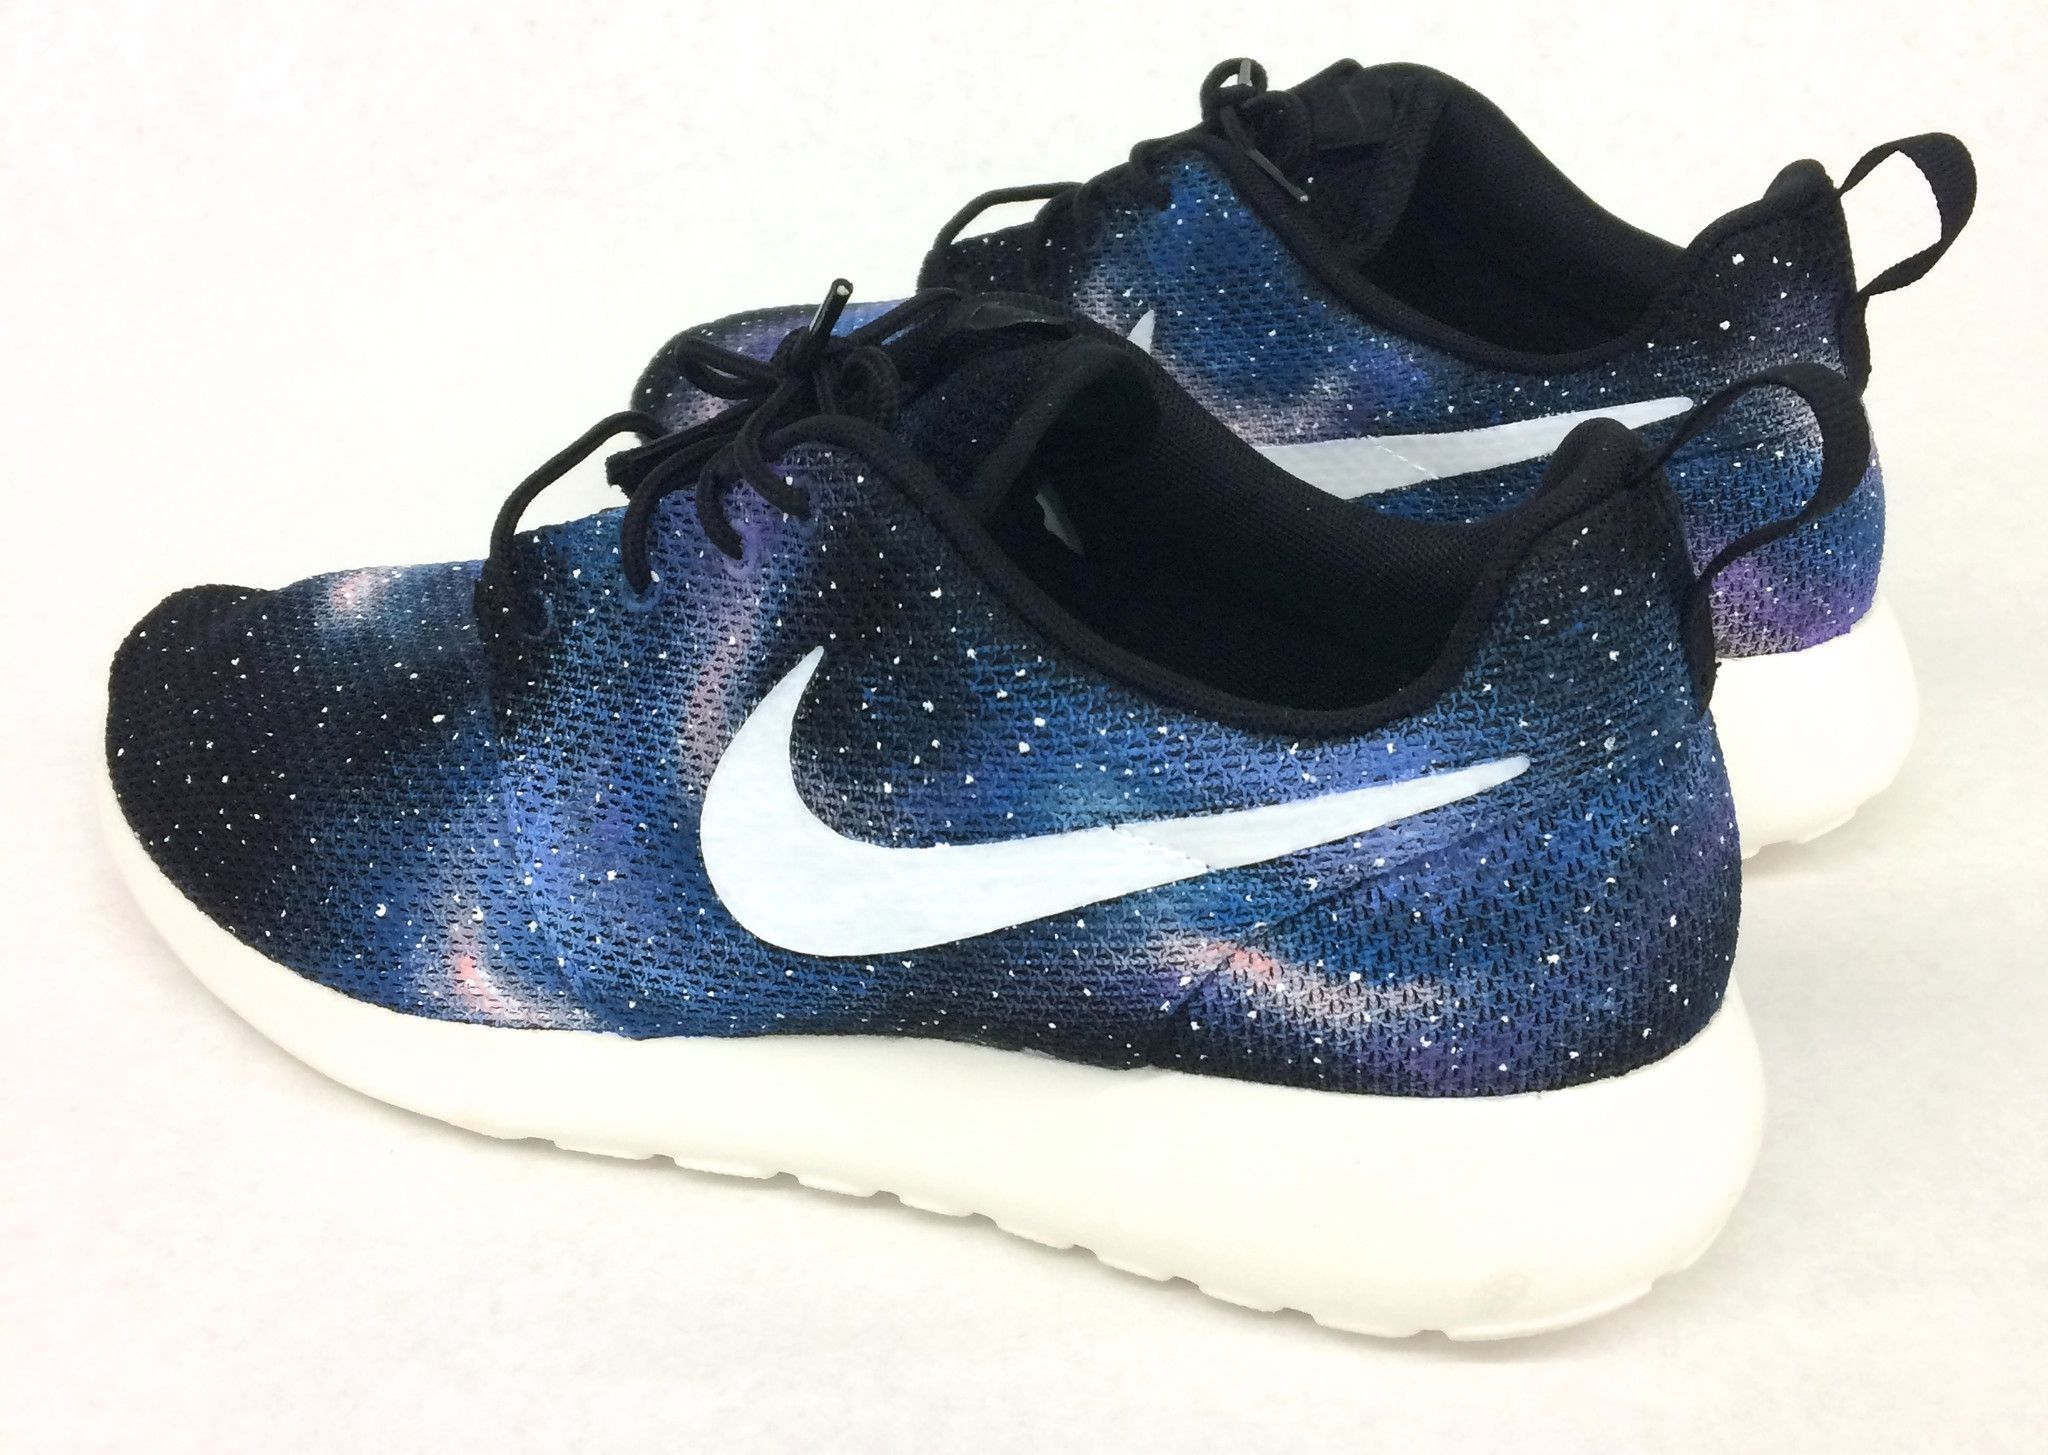 d69903319ff4 ... free shipping these custom hand painted nike roshe runs have galaxy  pattern painted all over the